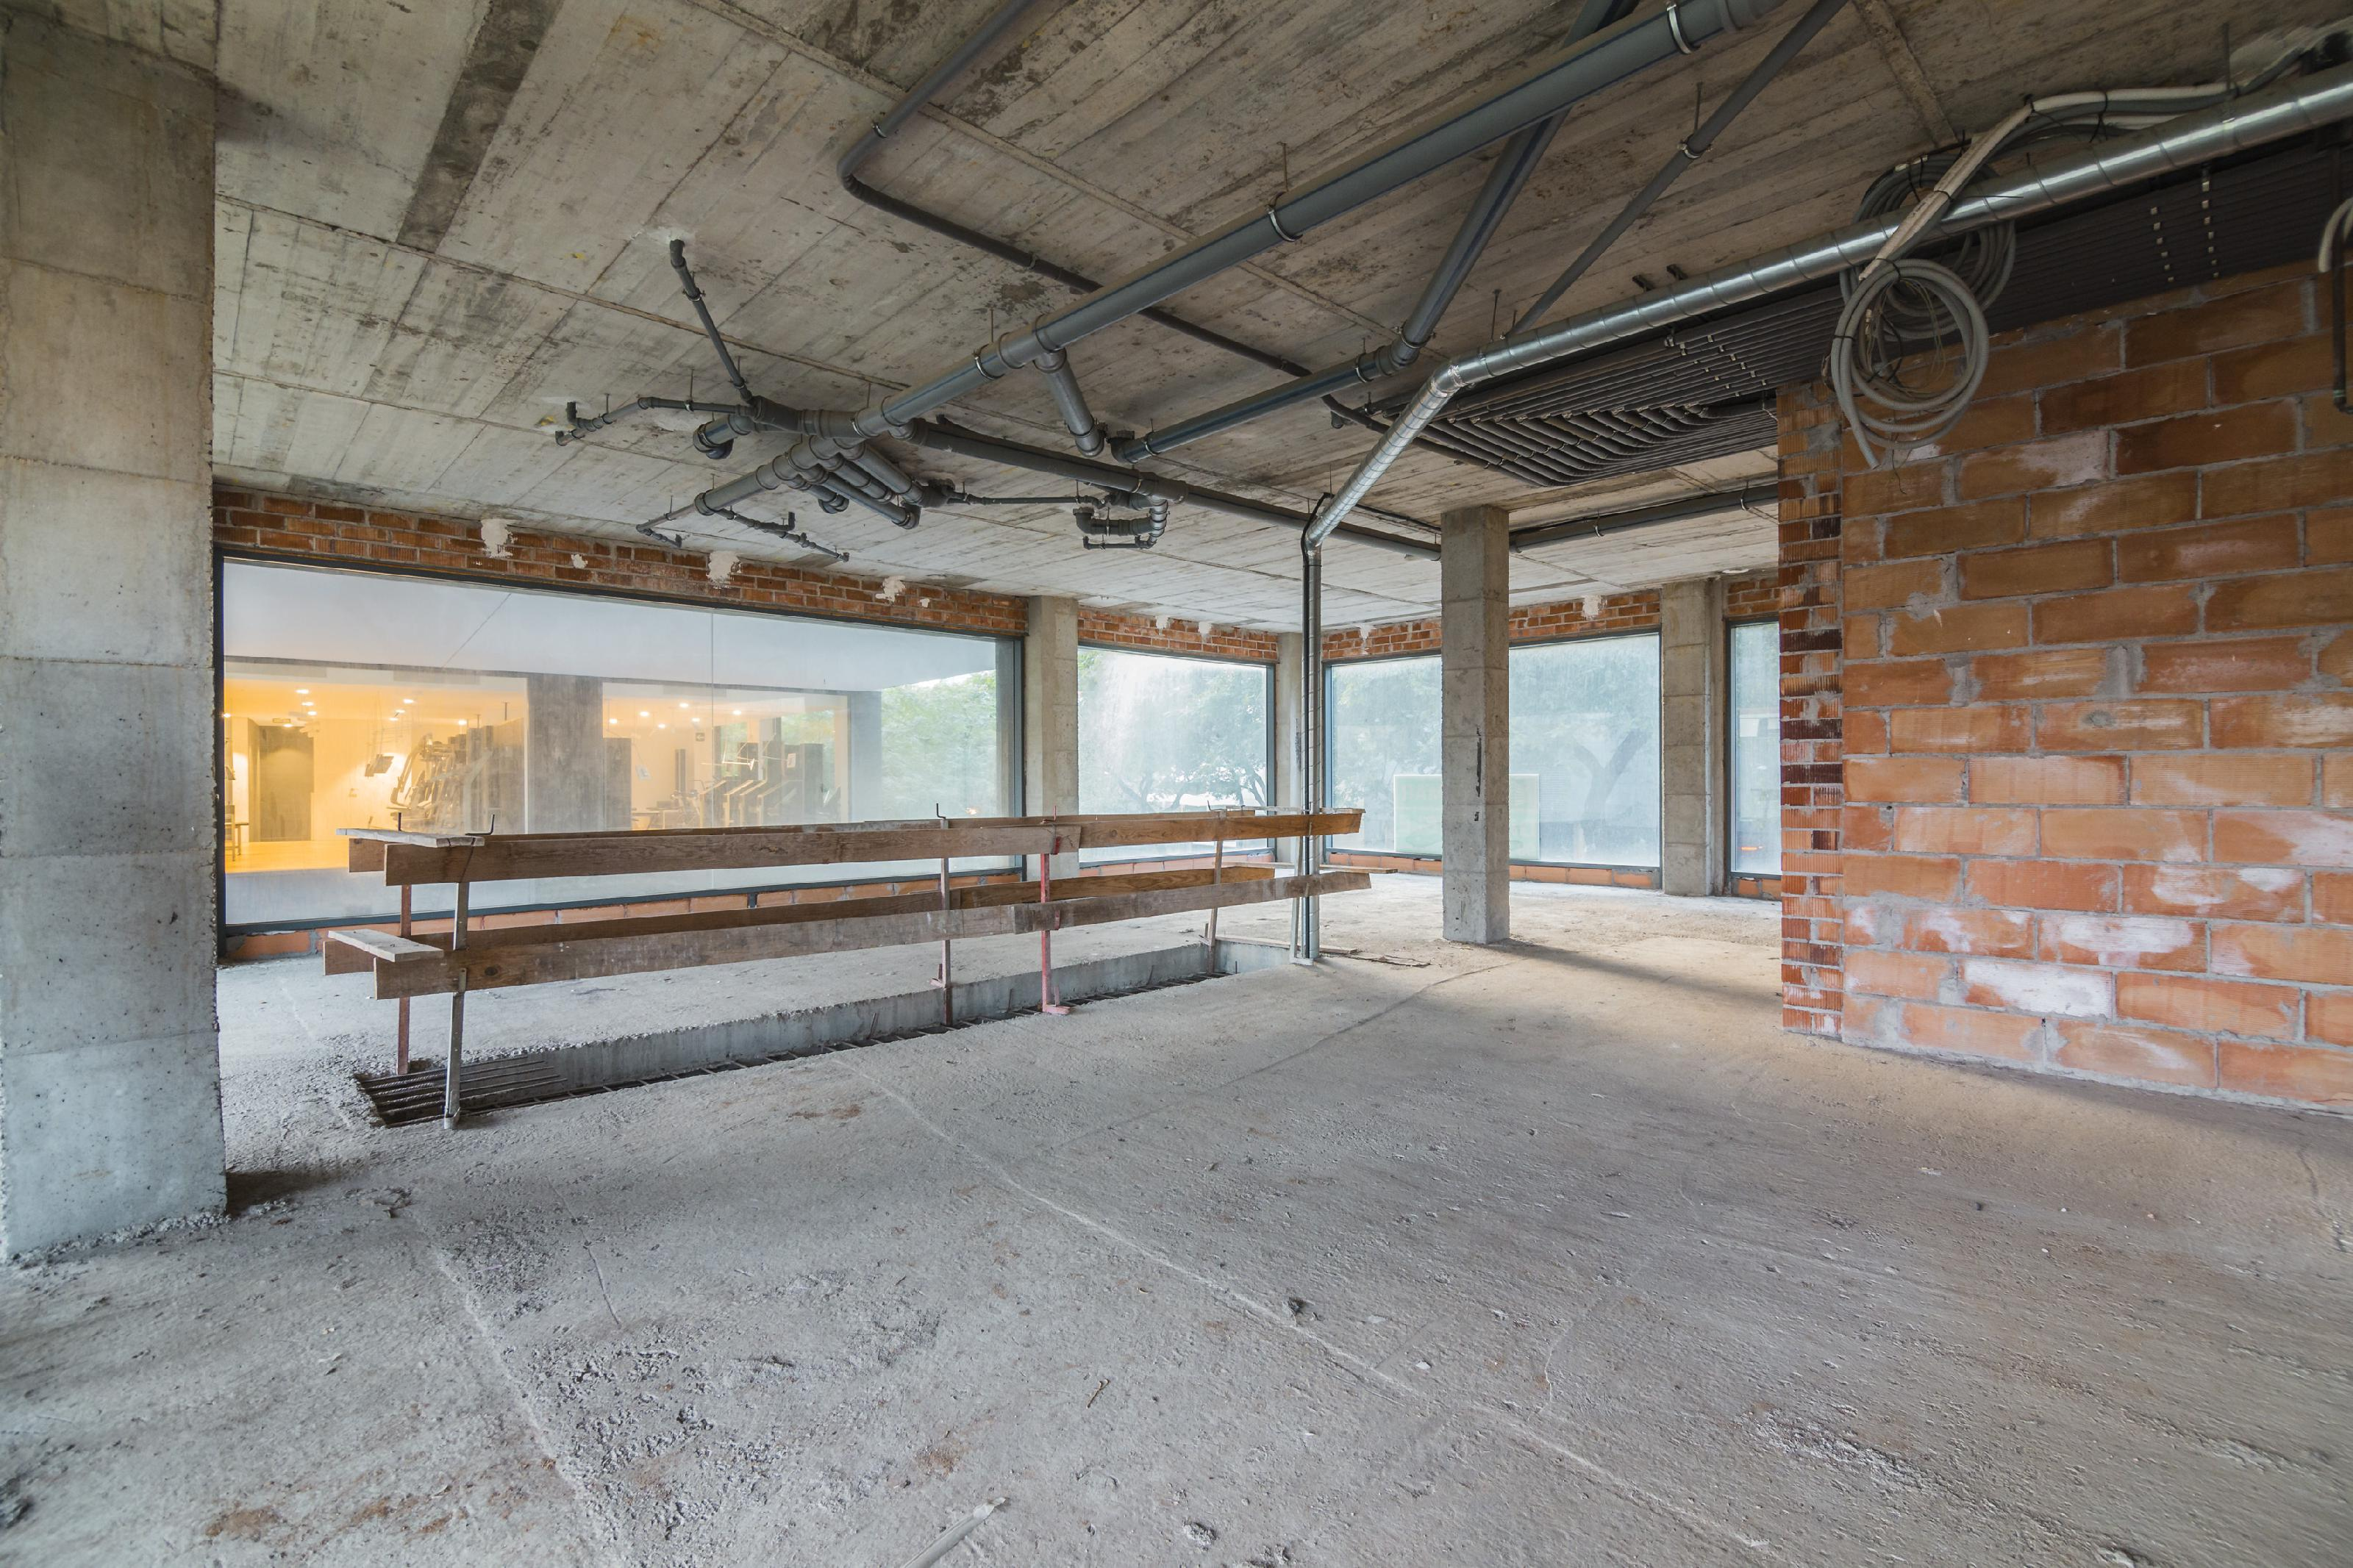 208066 Commercial Premises for sale in Les Corts, Les Corts 17